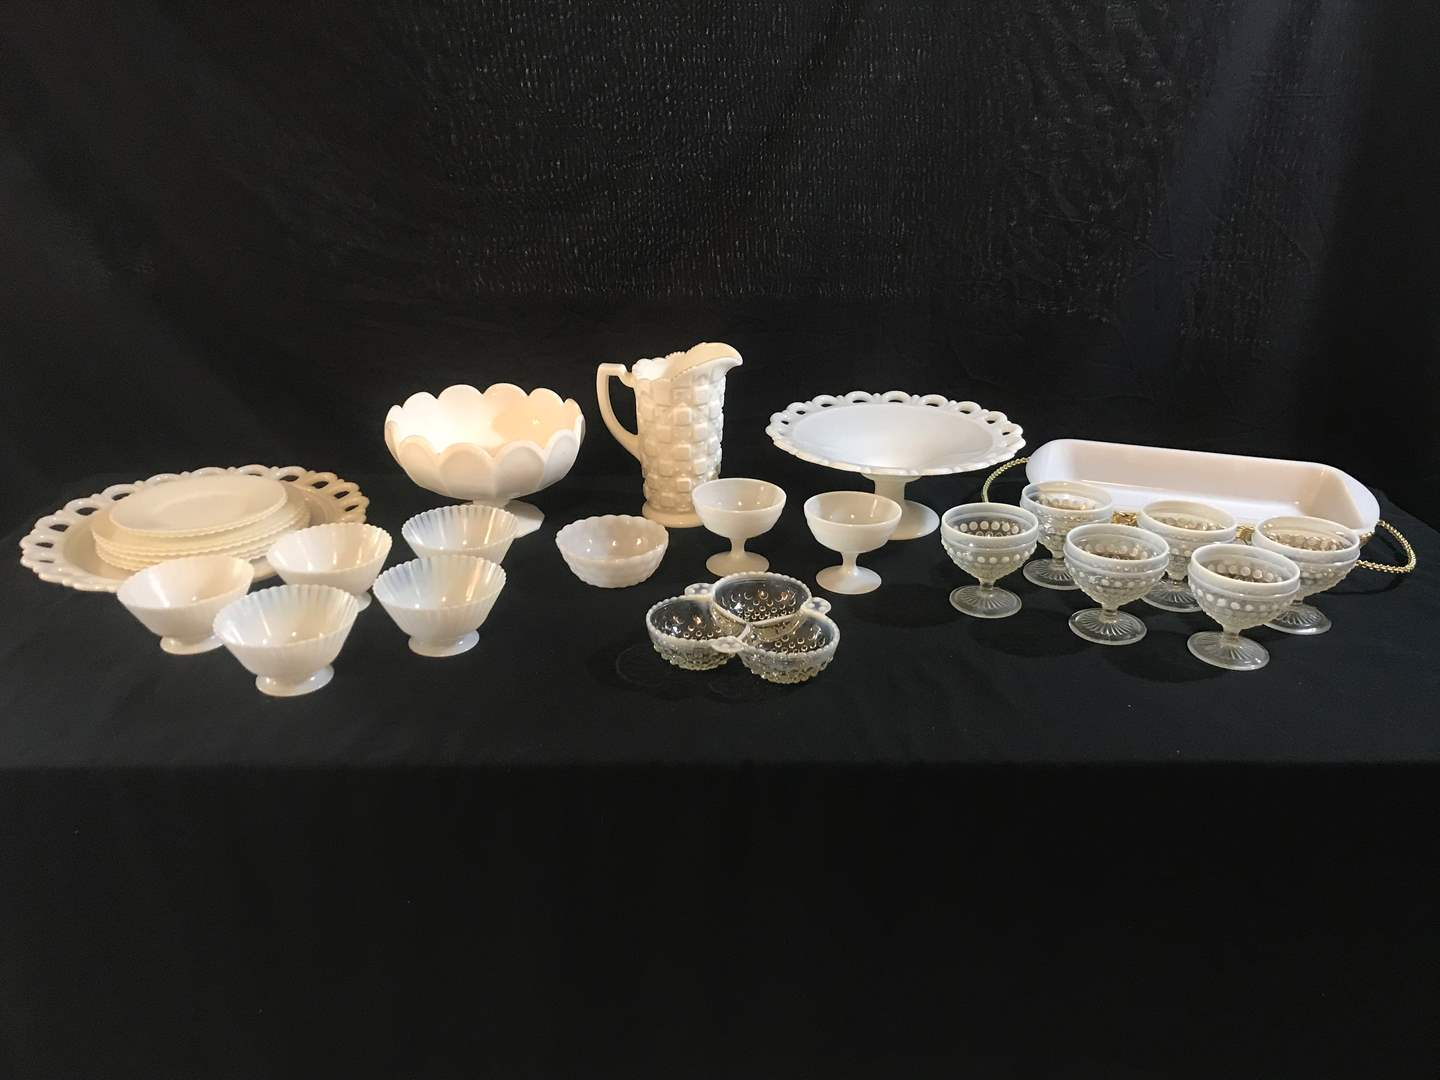 Lot # 62 - Large Selection of Milk Glass: Cups, Bowls, Plates, Cake Stand, Casserole Dish, Pitcher & More.. (main image)